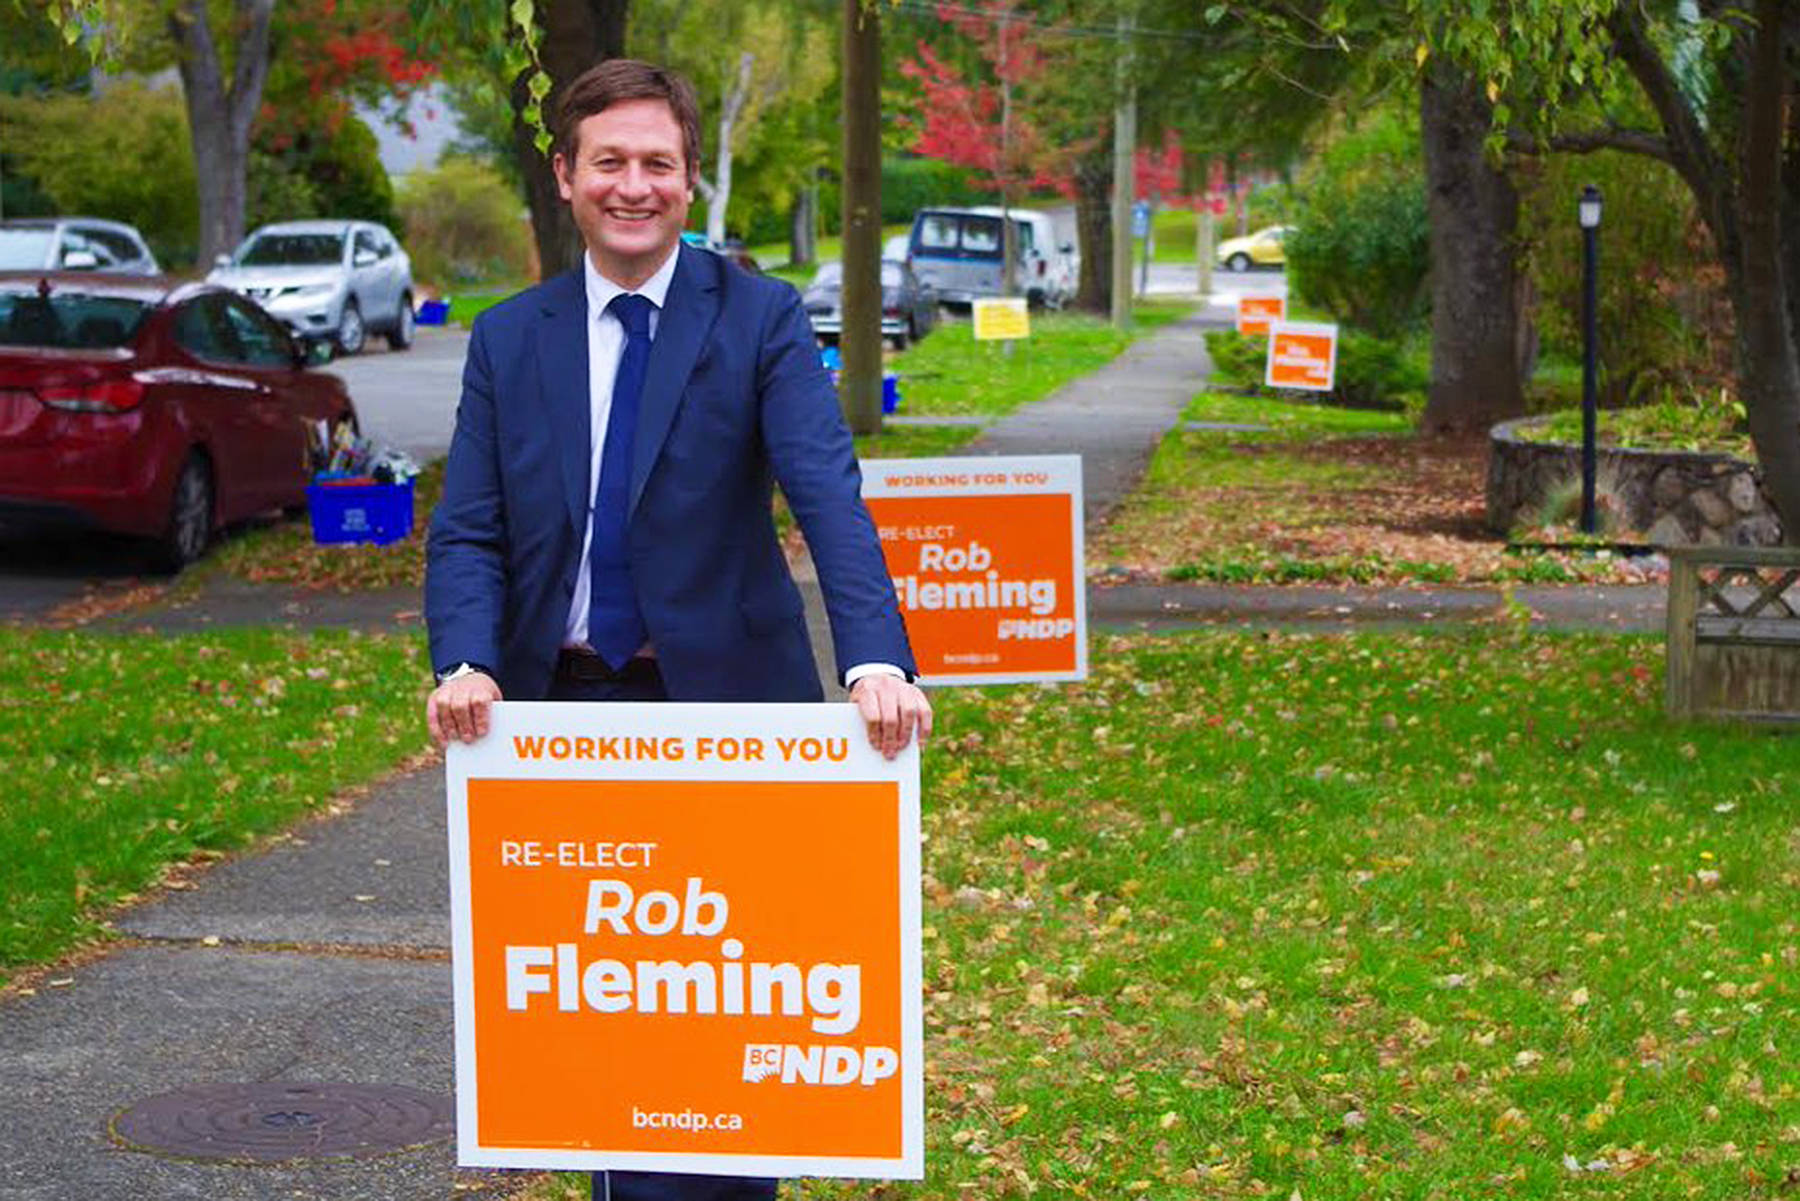 Rob Fleming, who served as minister of education in the most recent BC NDP government, is seeking his fifth term in office in the Victoria-Swan Lake riding. (Rob Fleming/Twitter)